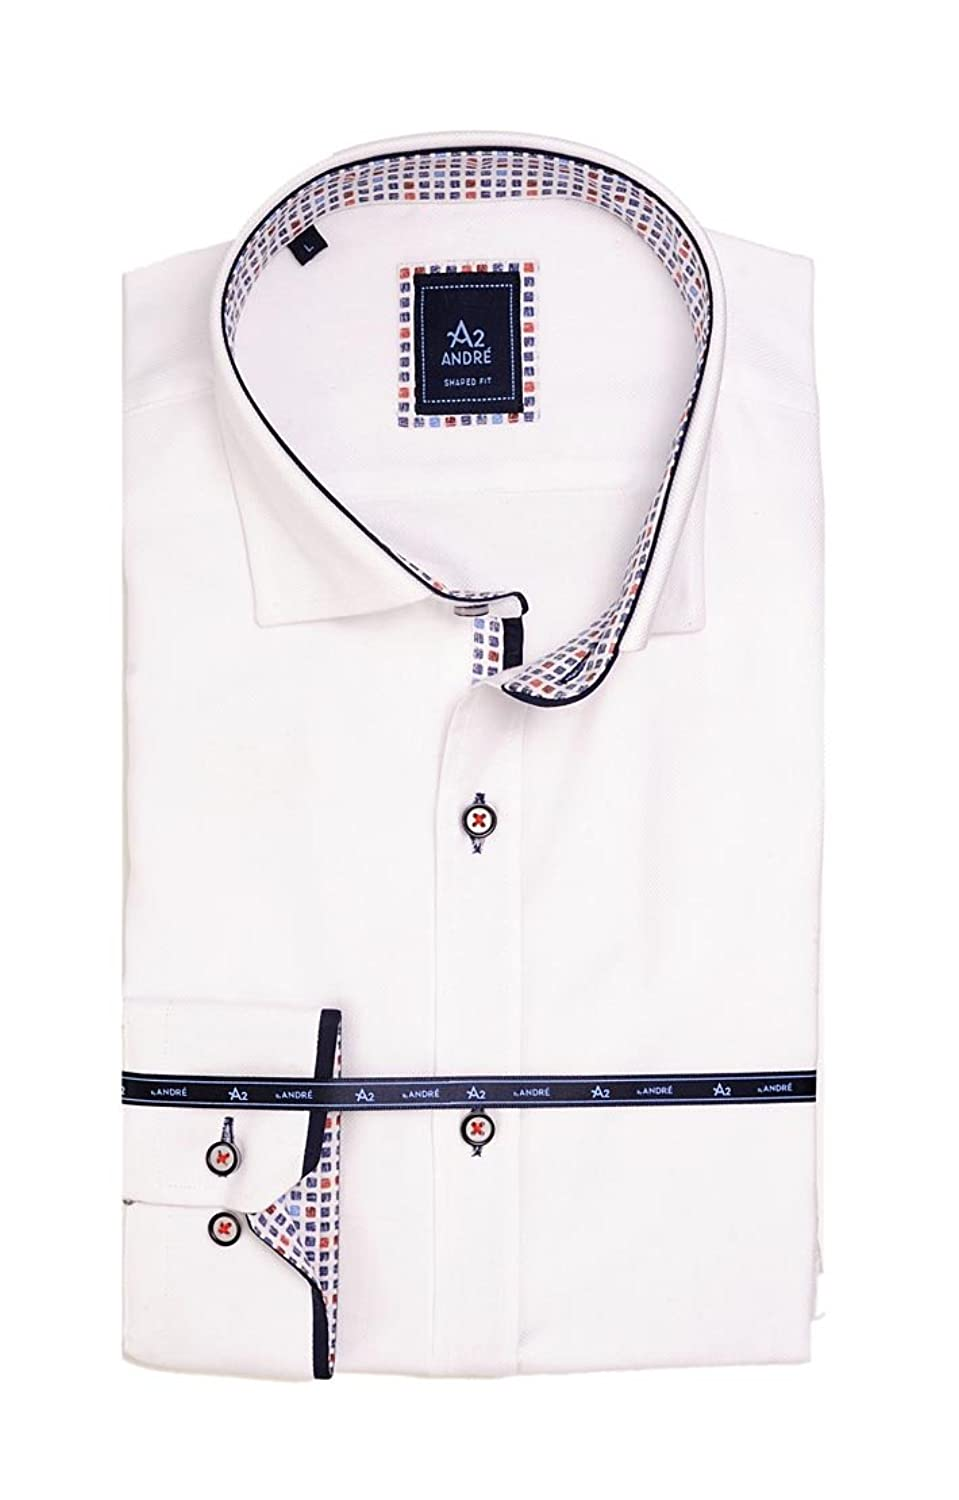 A2 Majorca 100% Luxury Cotton Smart Casual Shirt in crisp white and beautifully designed by Andr茅 Menswear